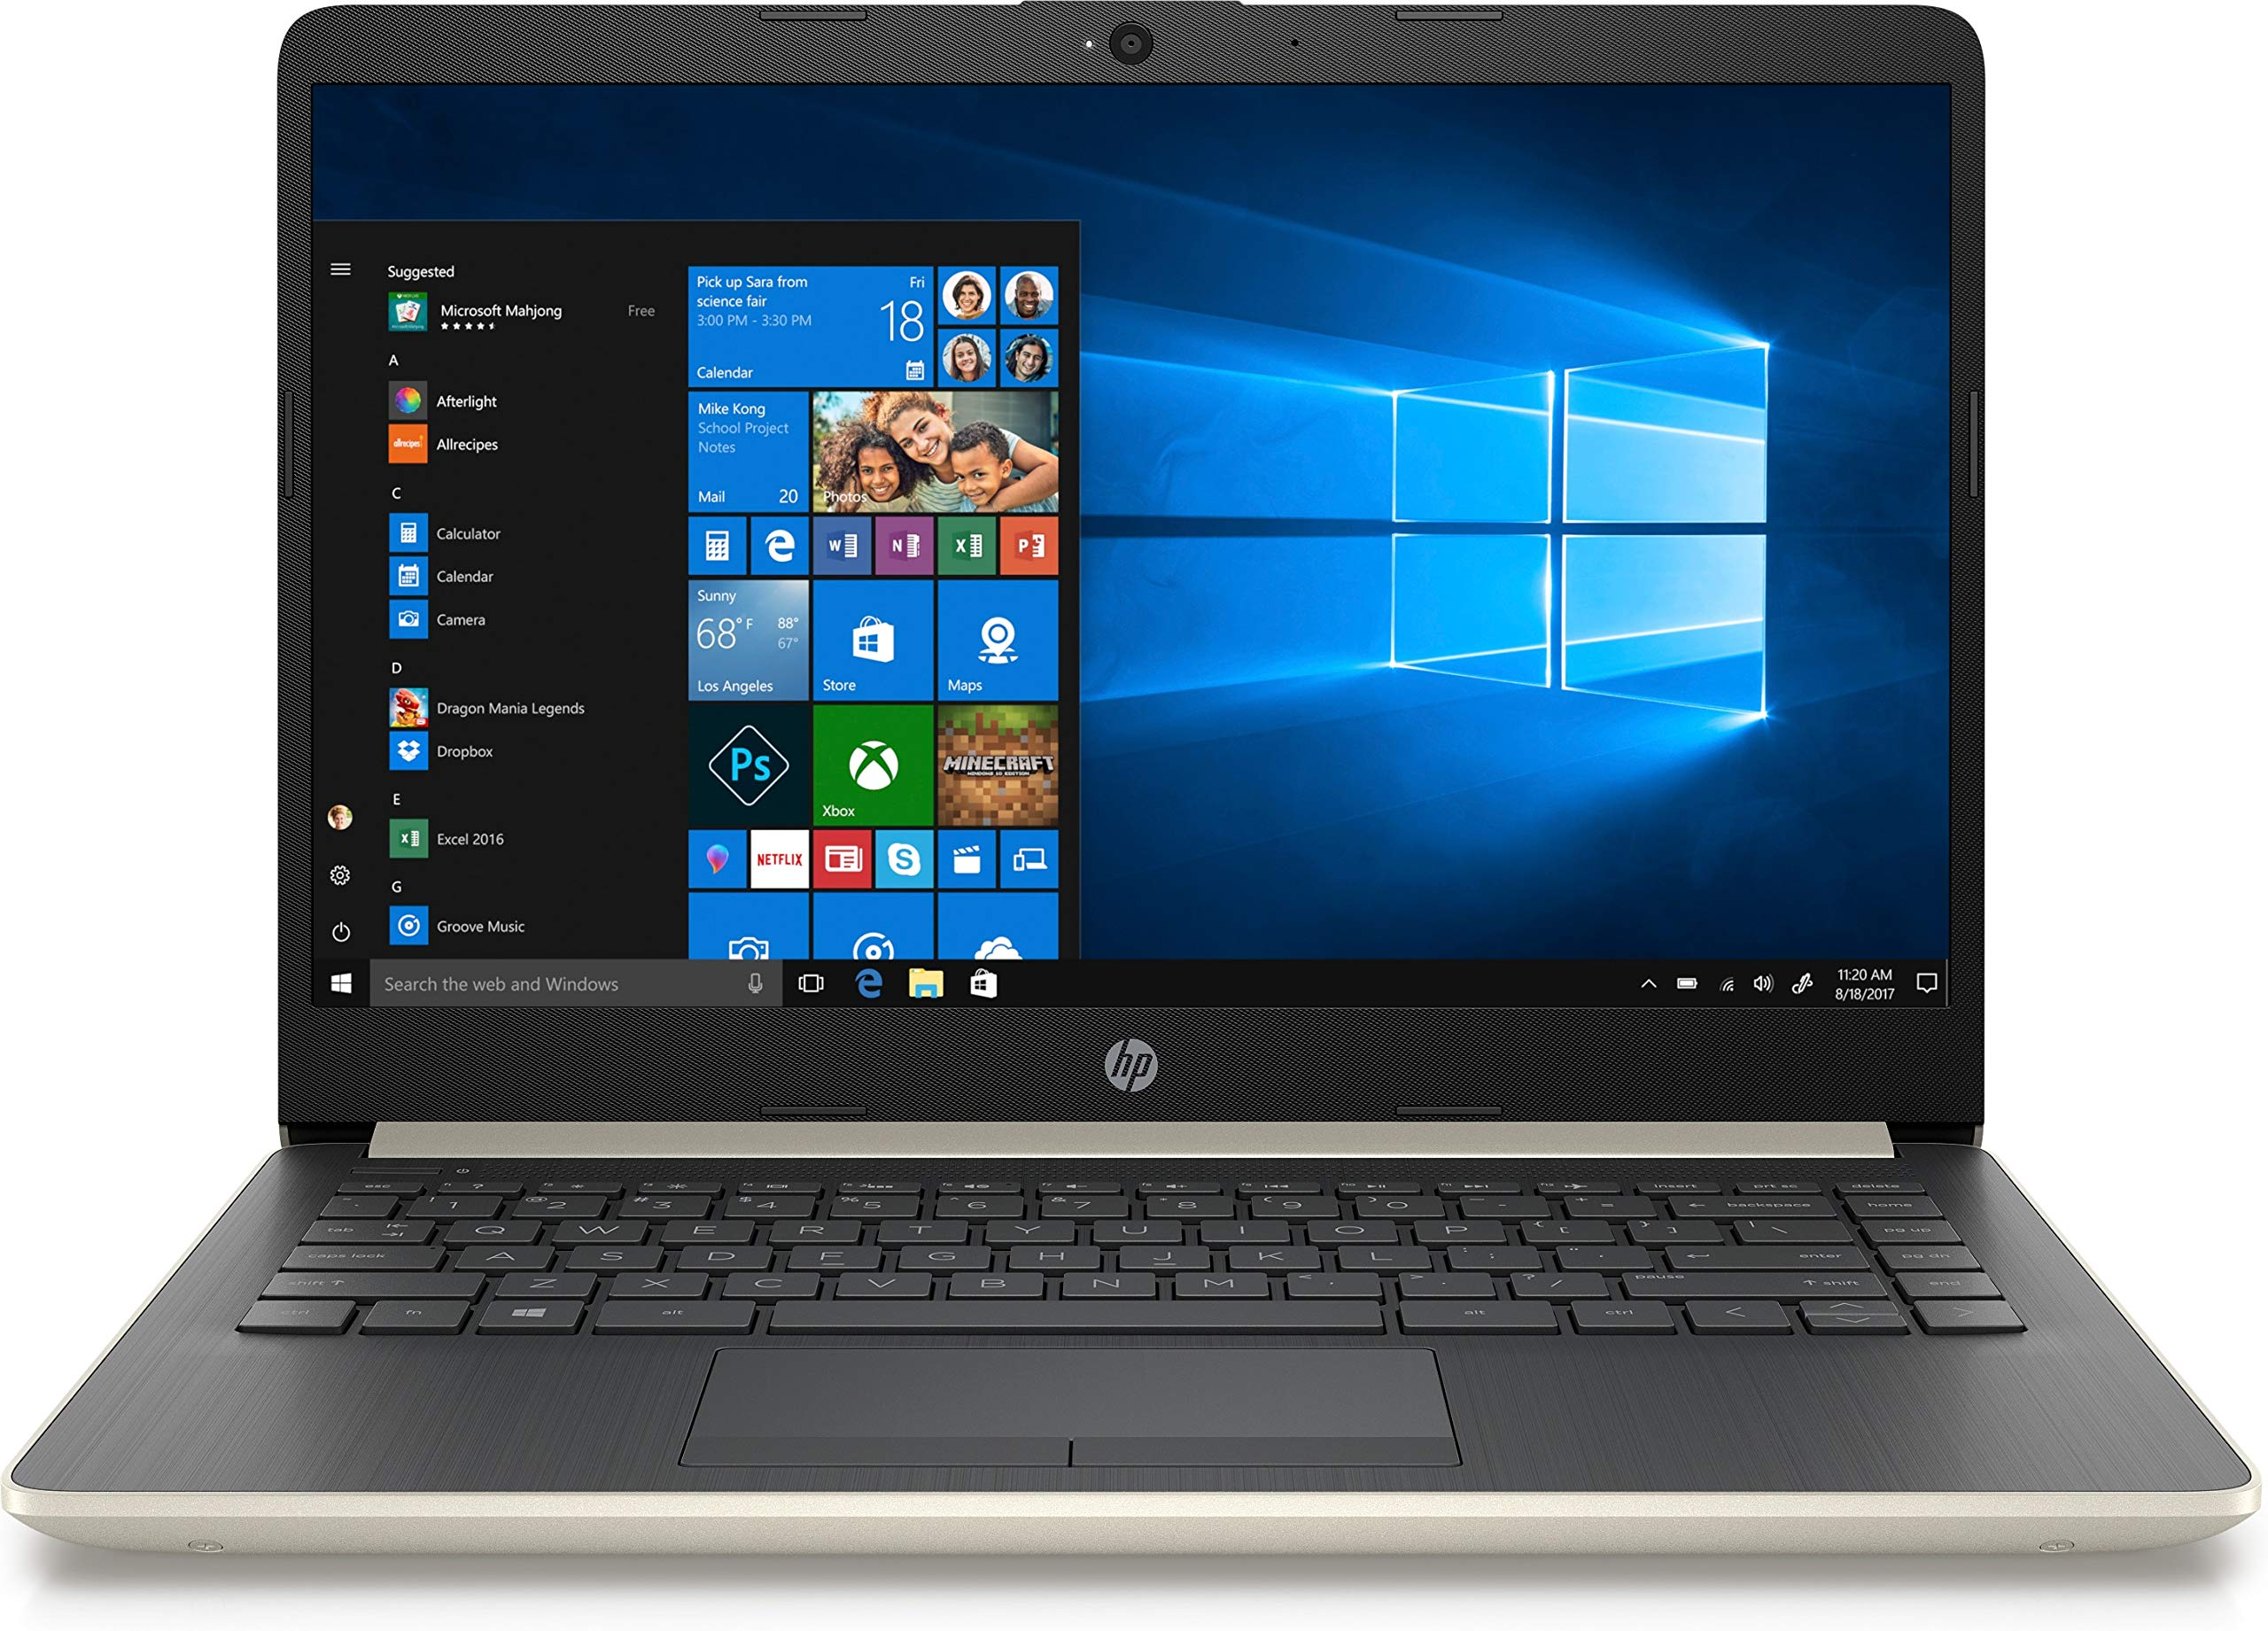 HP 2019 14'' Laptop - Intel Core i3 - 8GB Memory - 128GB Solid State Drive - Ash Silver Keyboard Frame (14-CF0014DX) by HP